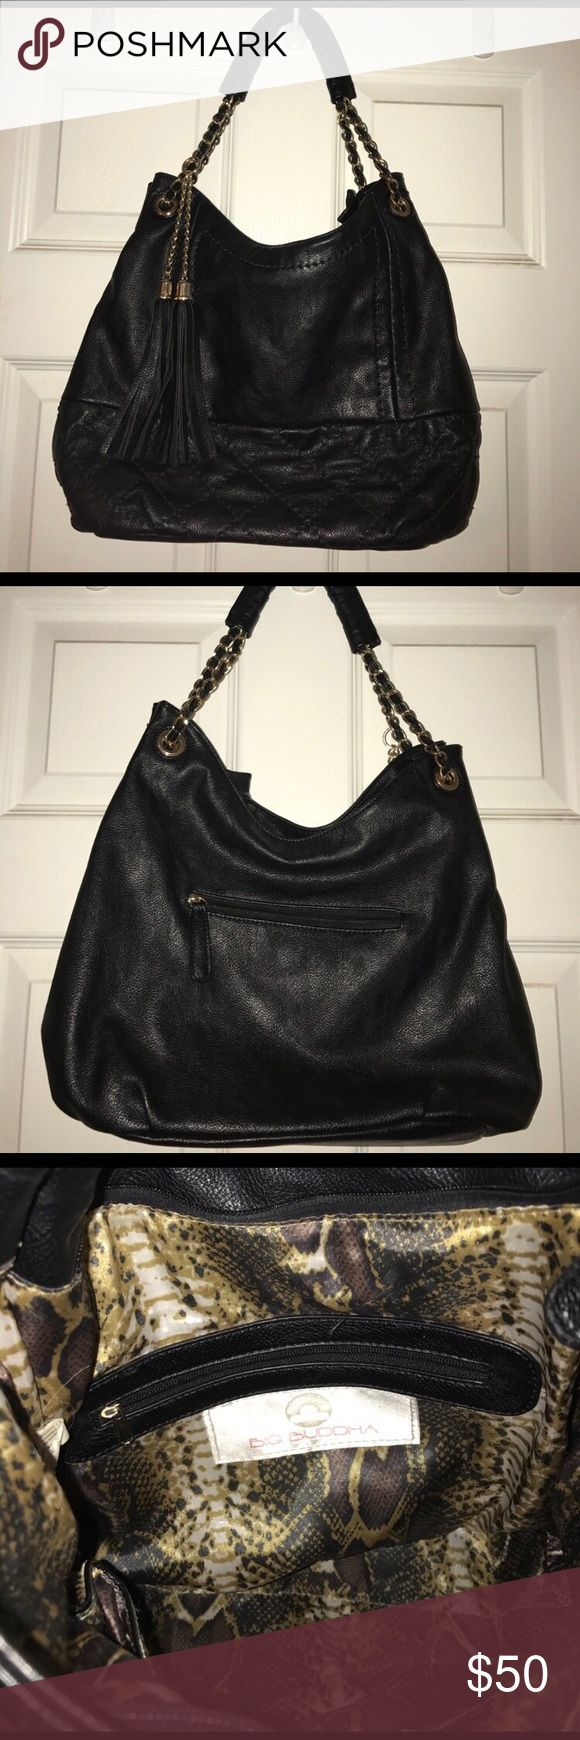 Big Buddha bag Black purse with gold chains and tassels inside is cheetah print very clean and in great condition Big Buddha Bags Shoulder Bags